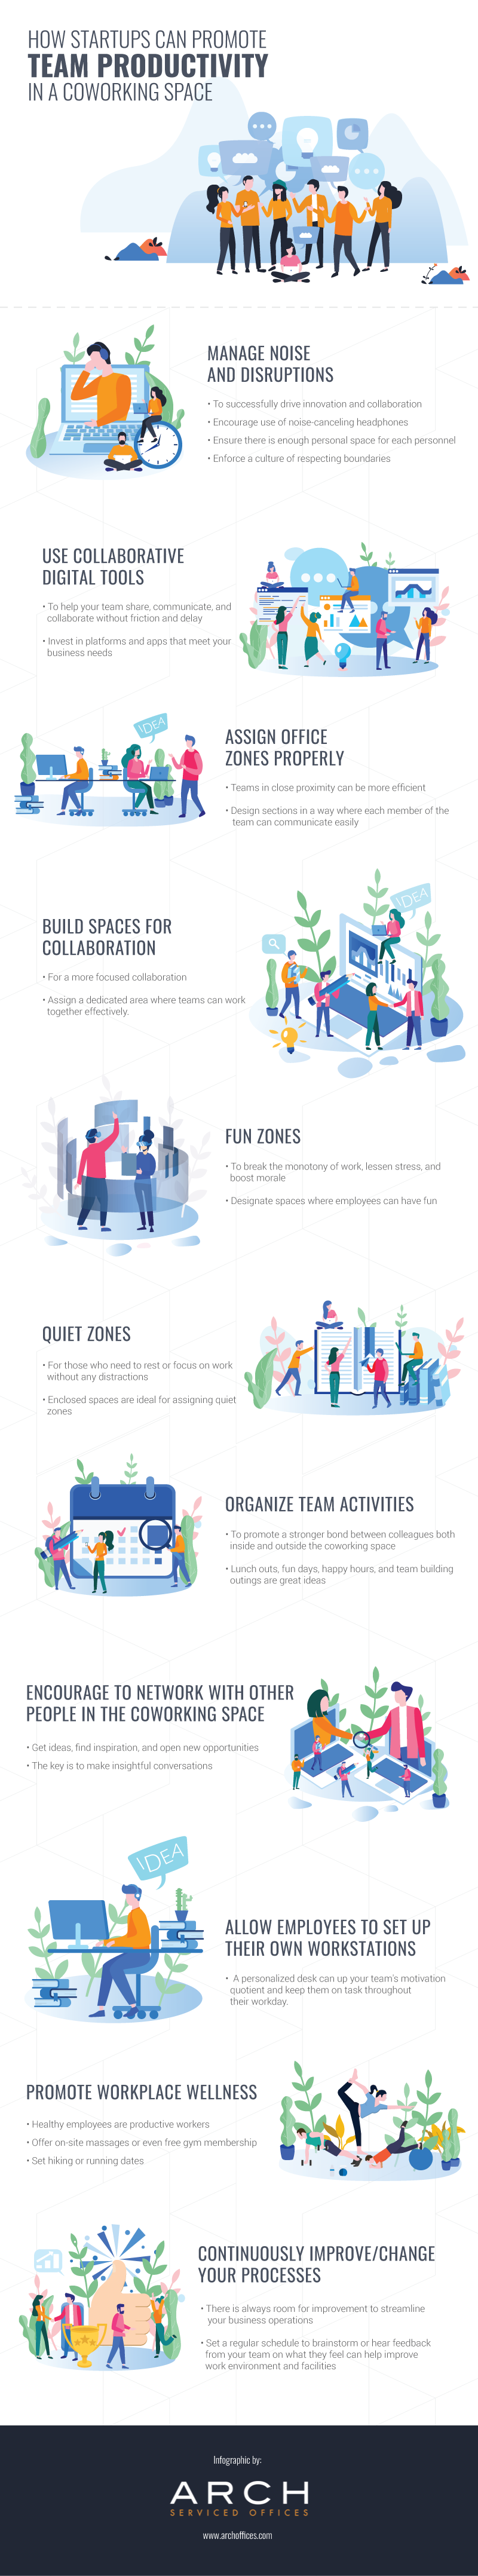 How Startups Can Promote Team Productivity in a Coworking Space Infographic